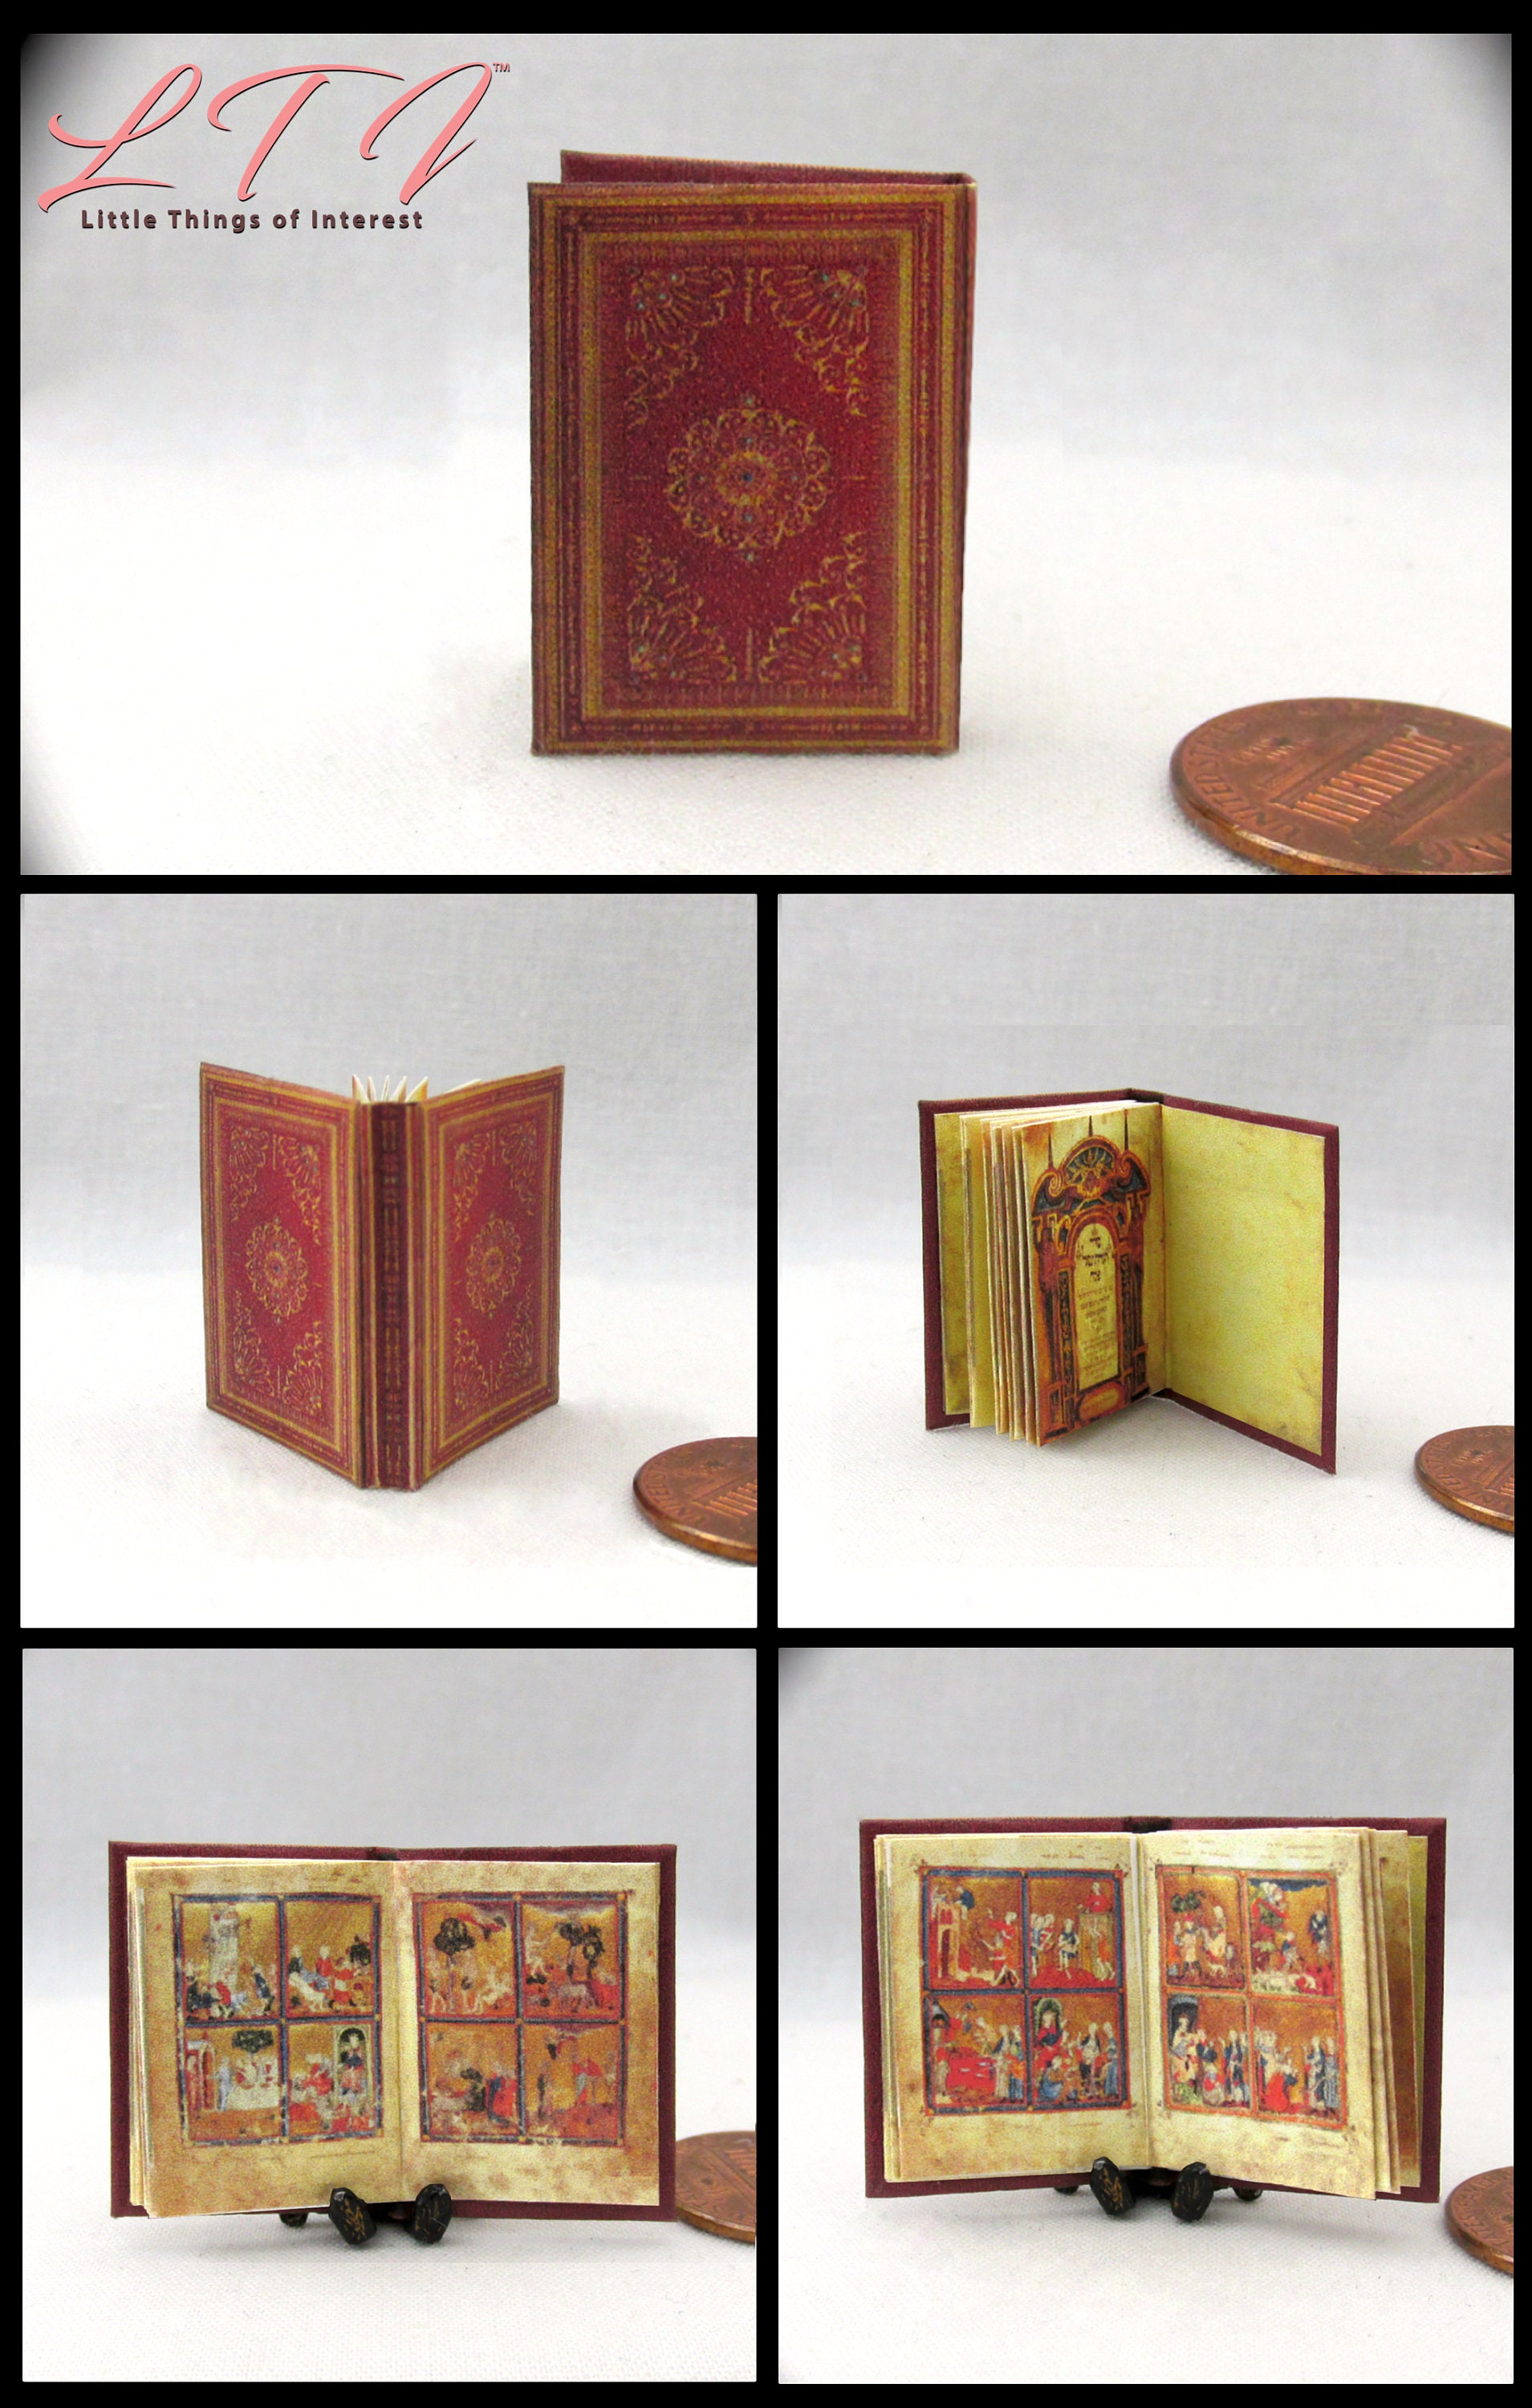 HEBREW GOLDEN HAGGADAH Miniature Book Dollhouse 1:12 Scale Illustrated Book